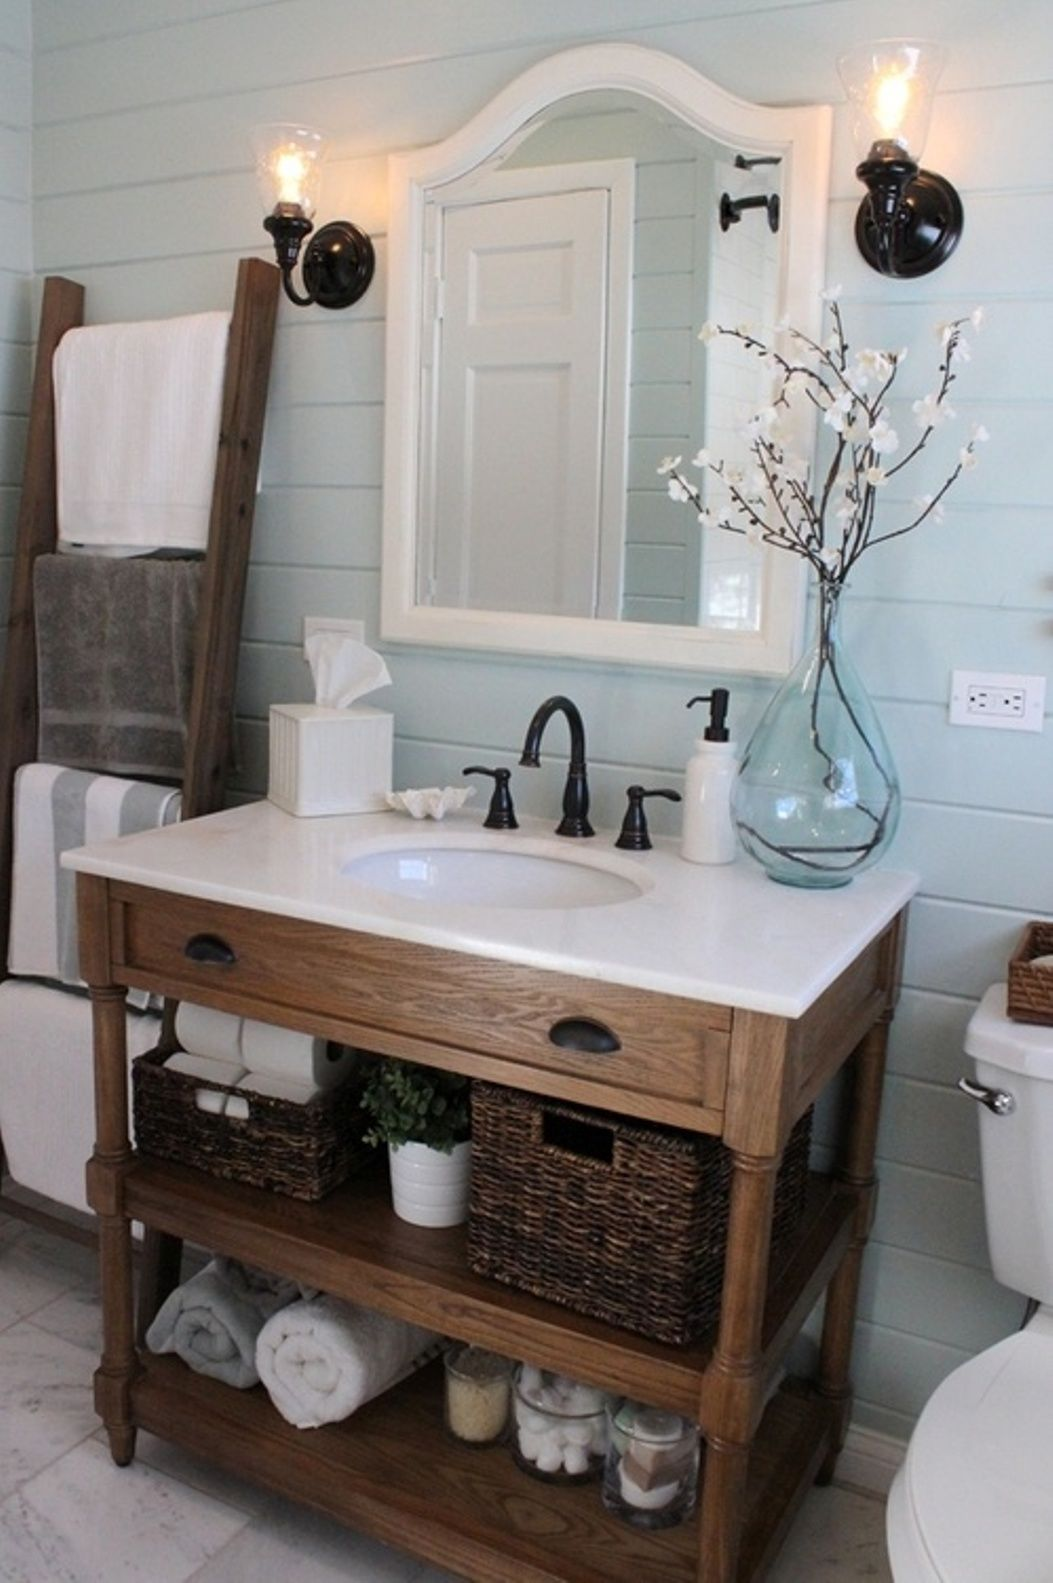 17 inspiring rustic bathroom decor ideas for cozy home for Toilet decor